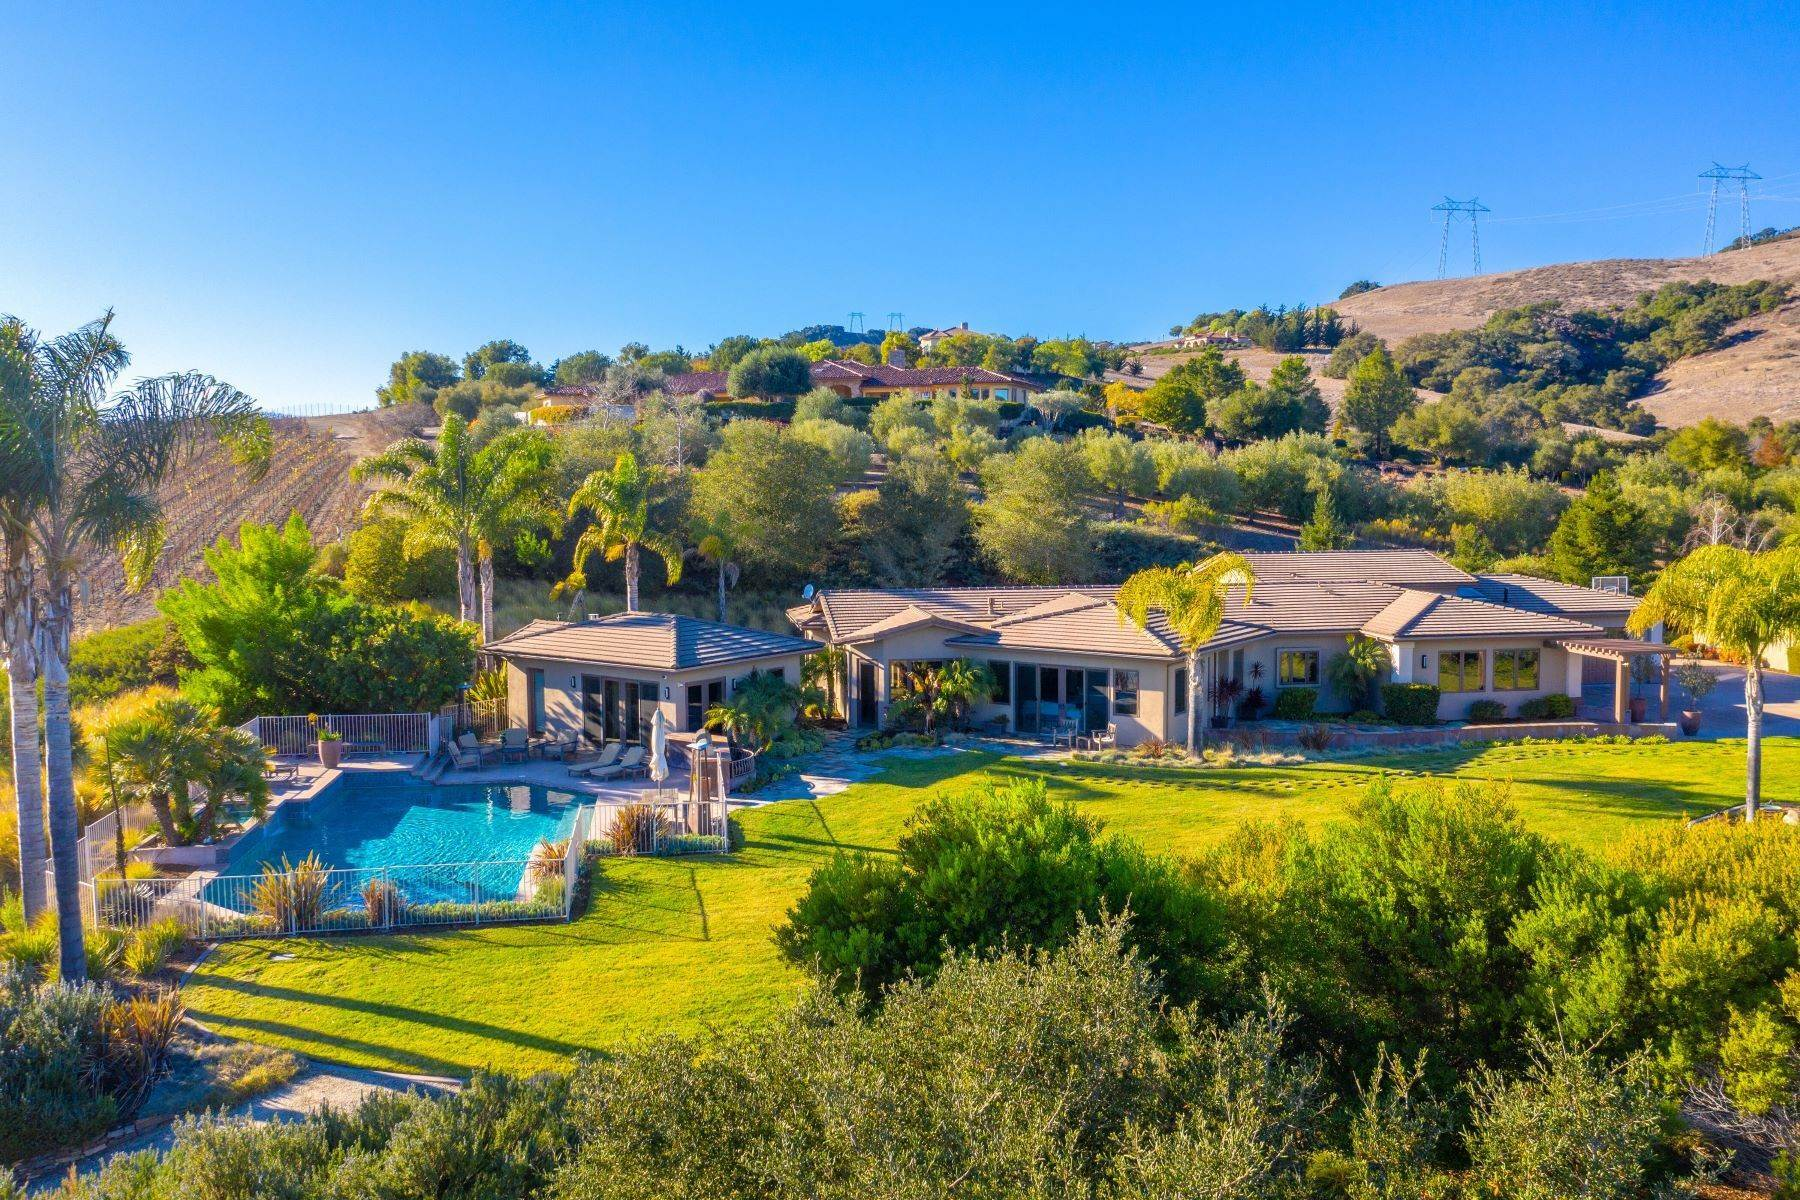 Single Family Homes for Sale at Avila Valley Estate with Detached Living Spaces 425 Bassi Drive San Luis Obispo, California 93405 United States